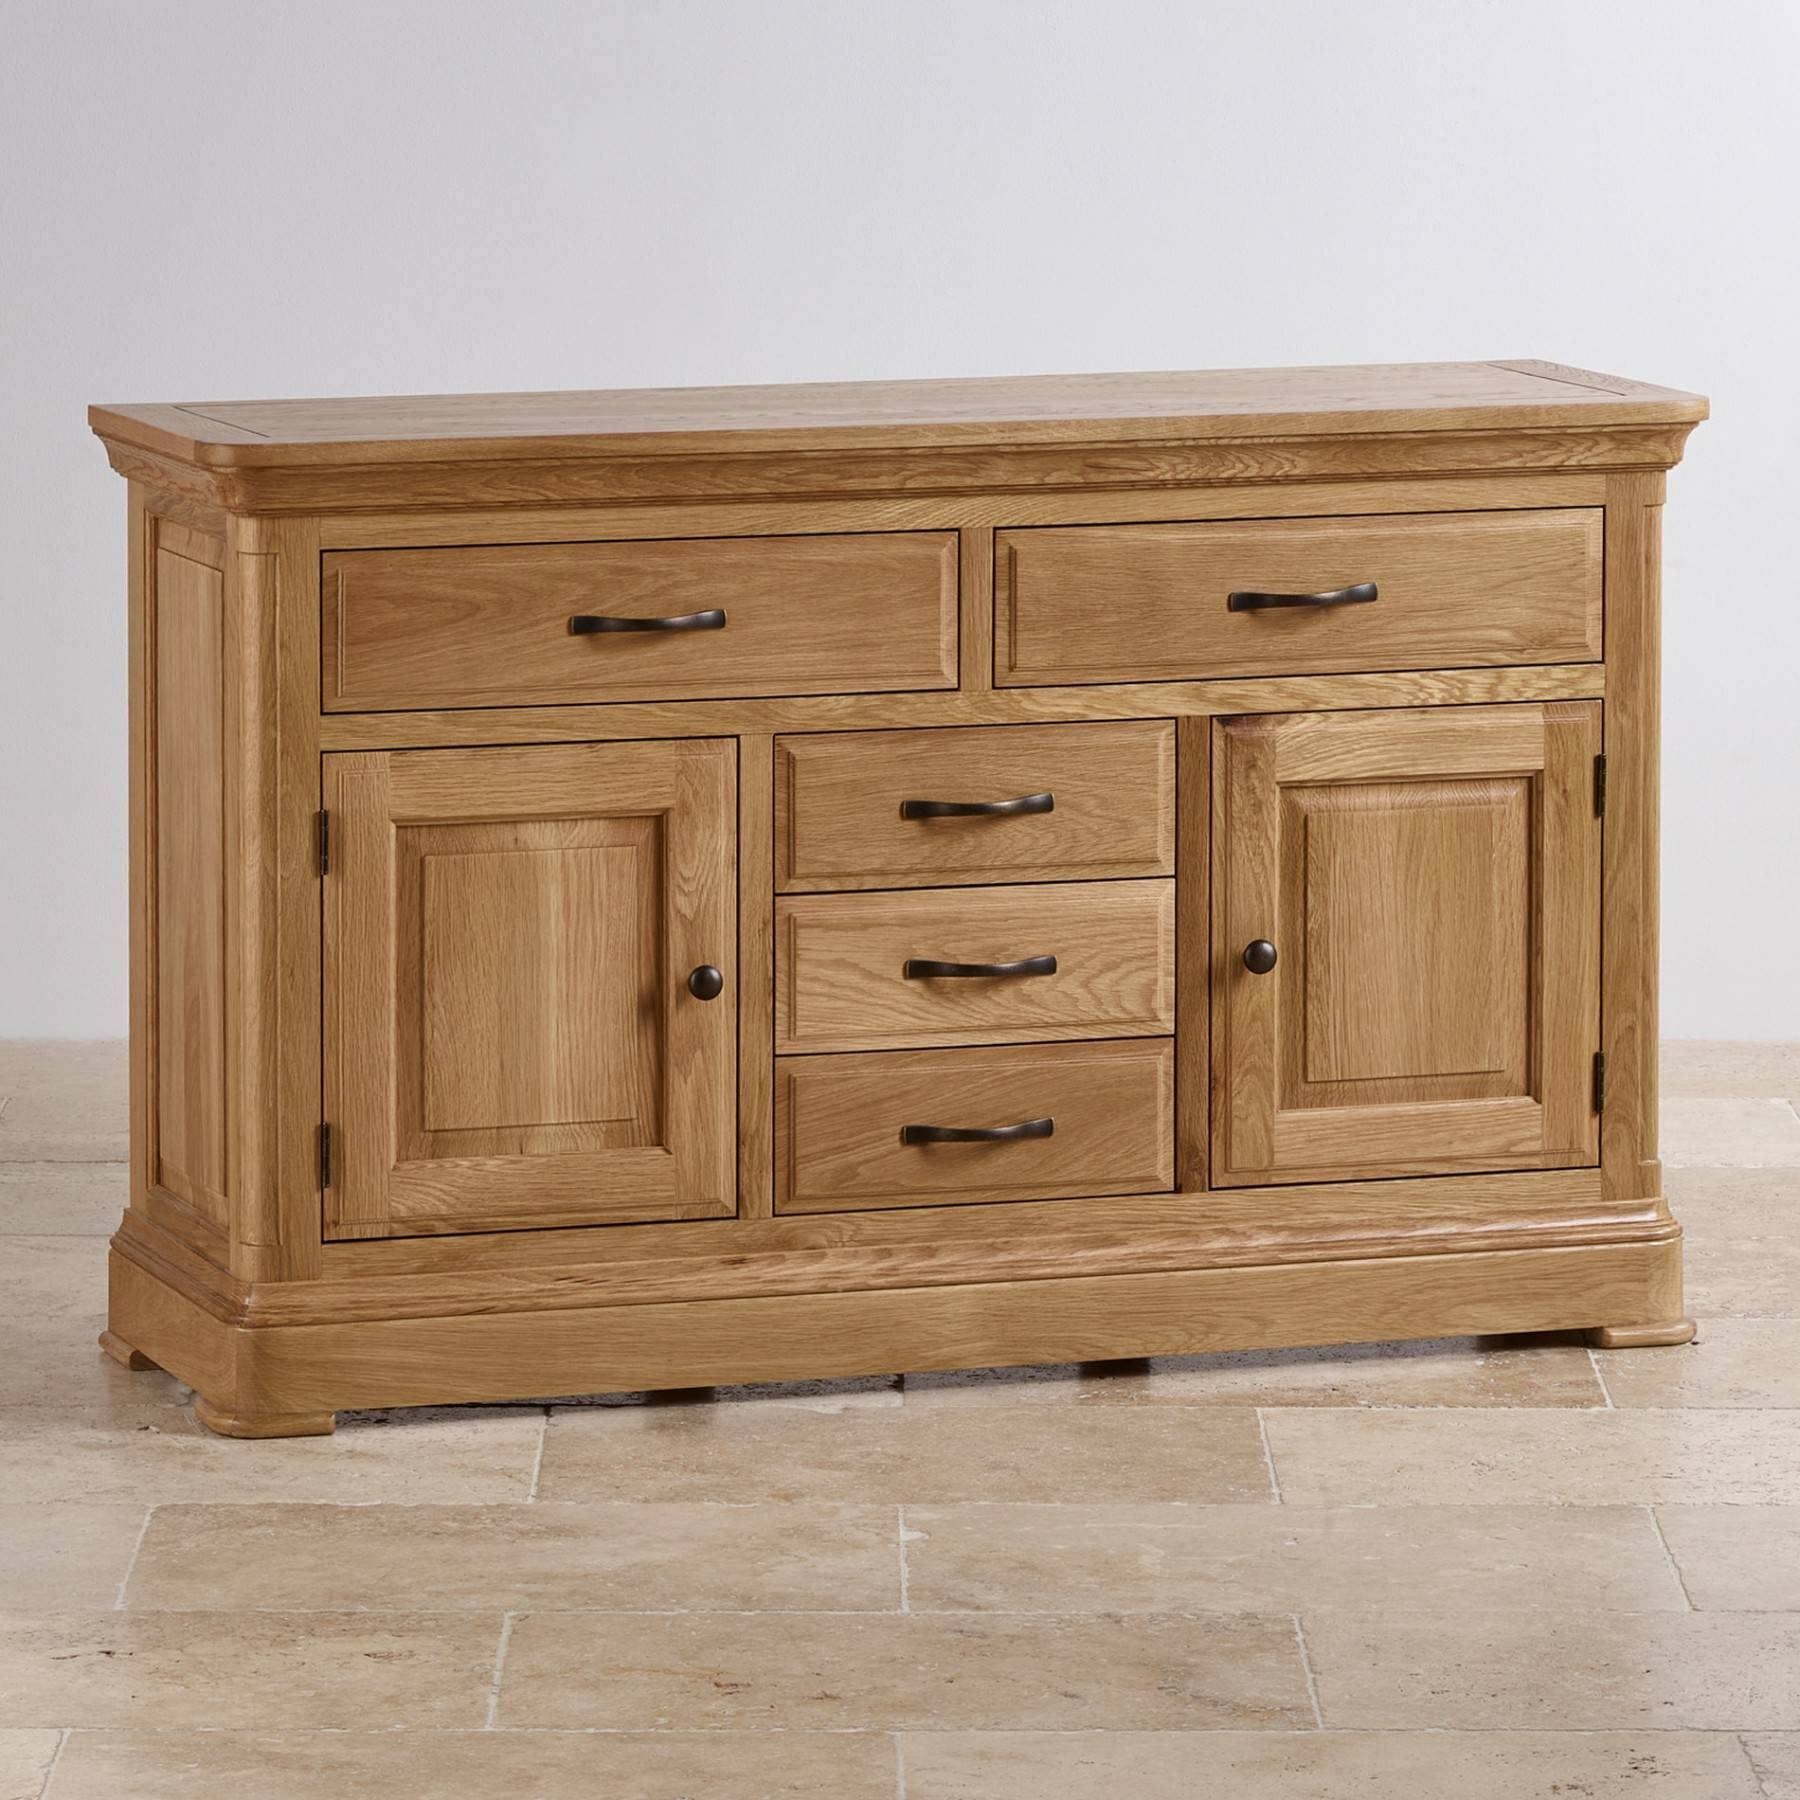 Canterbury Natural Solid Oak Large Sideboard | Sideboards | Dining Pertaining To Most Recent Natural Oak Sideboards (#4 of 15)